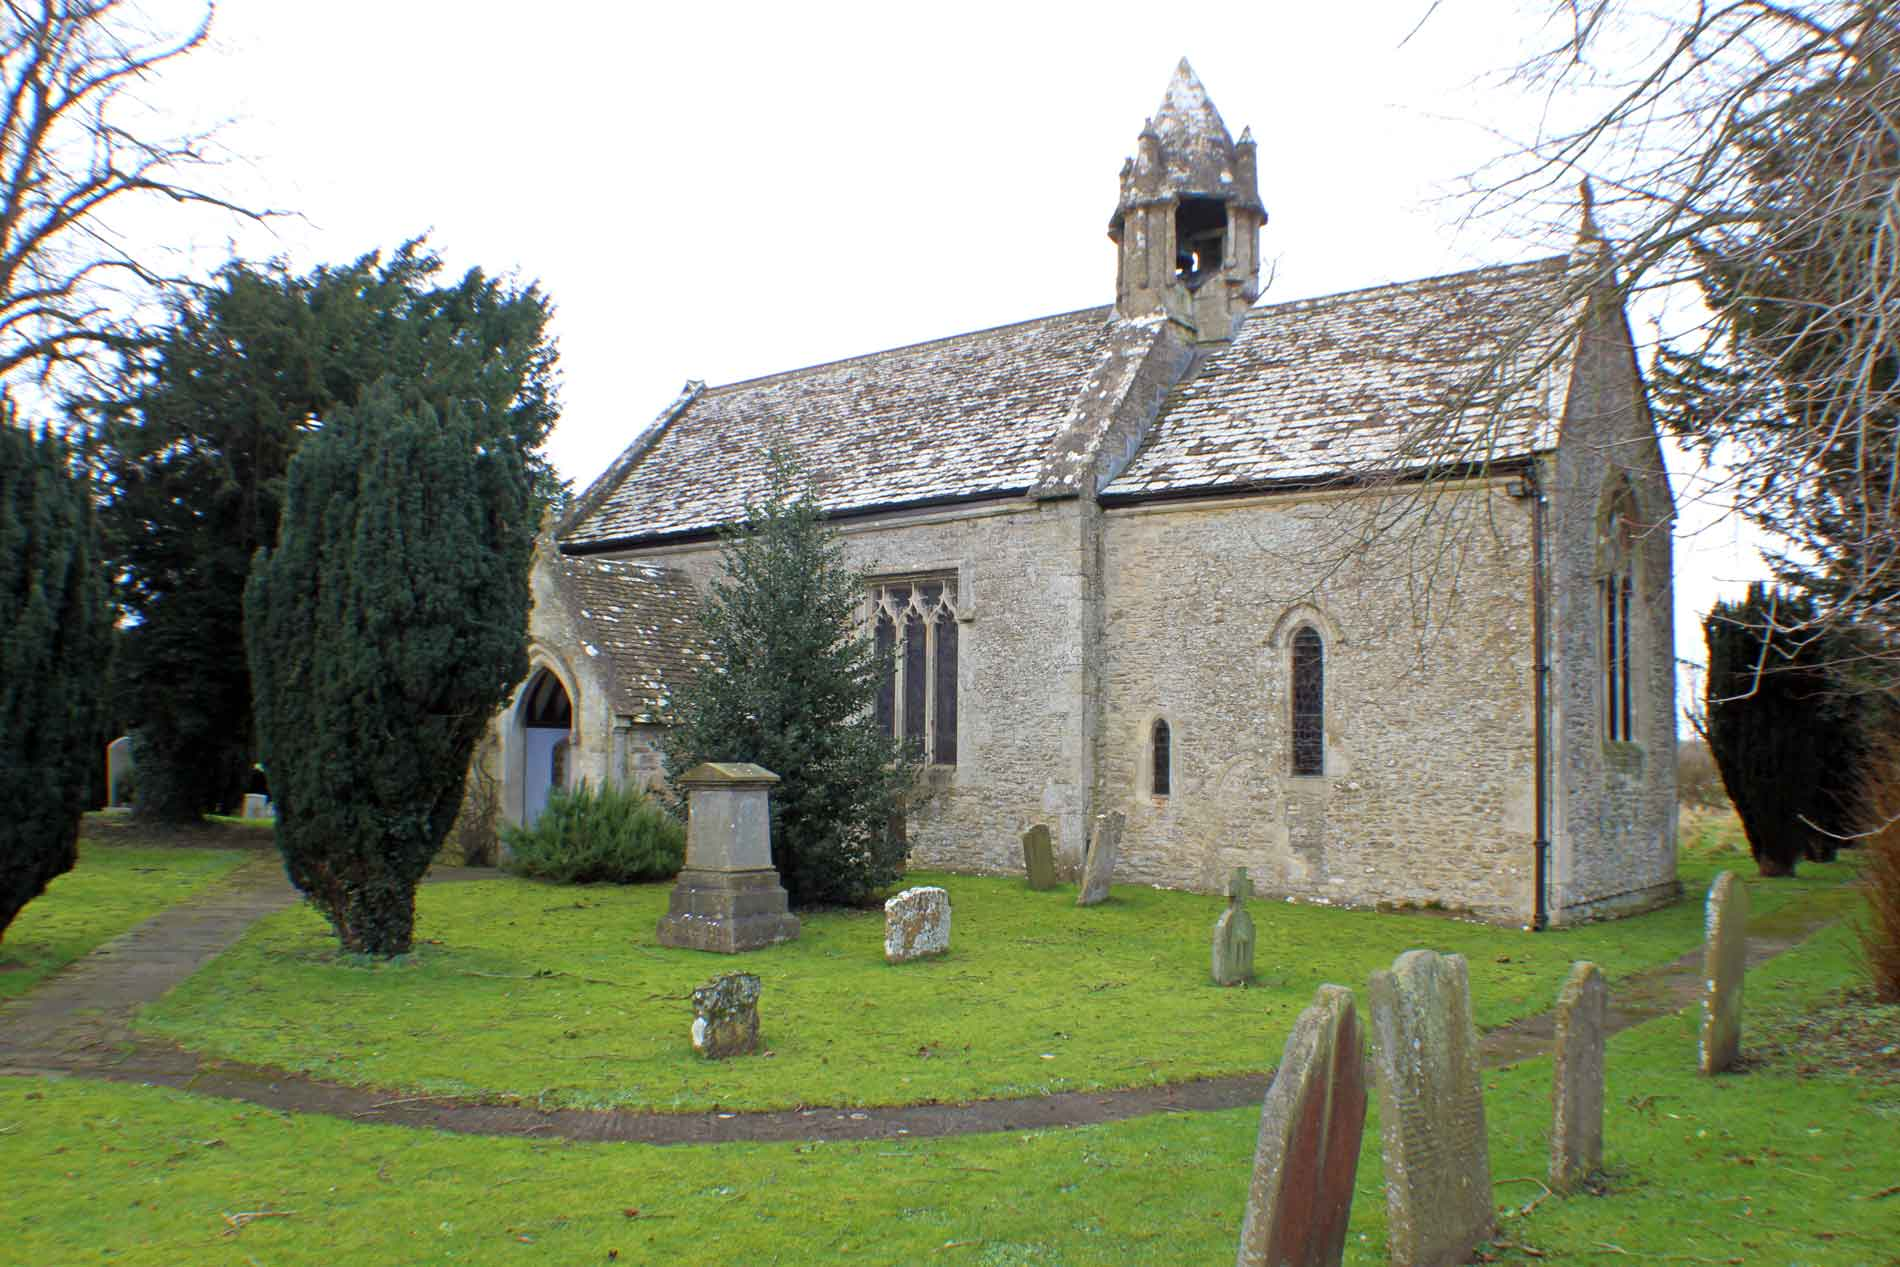 Acton Turville - St. Mary